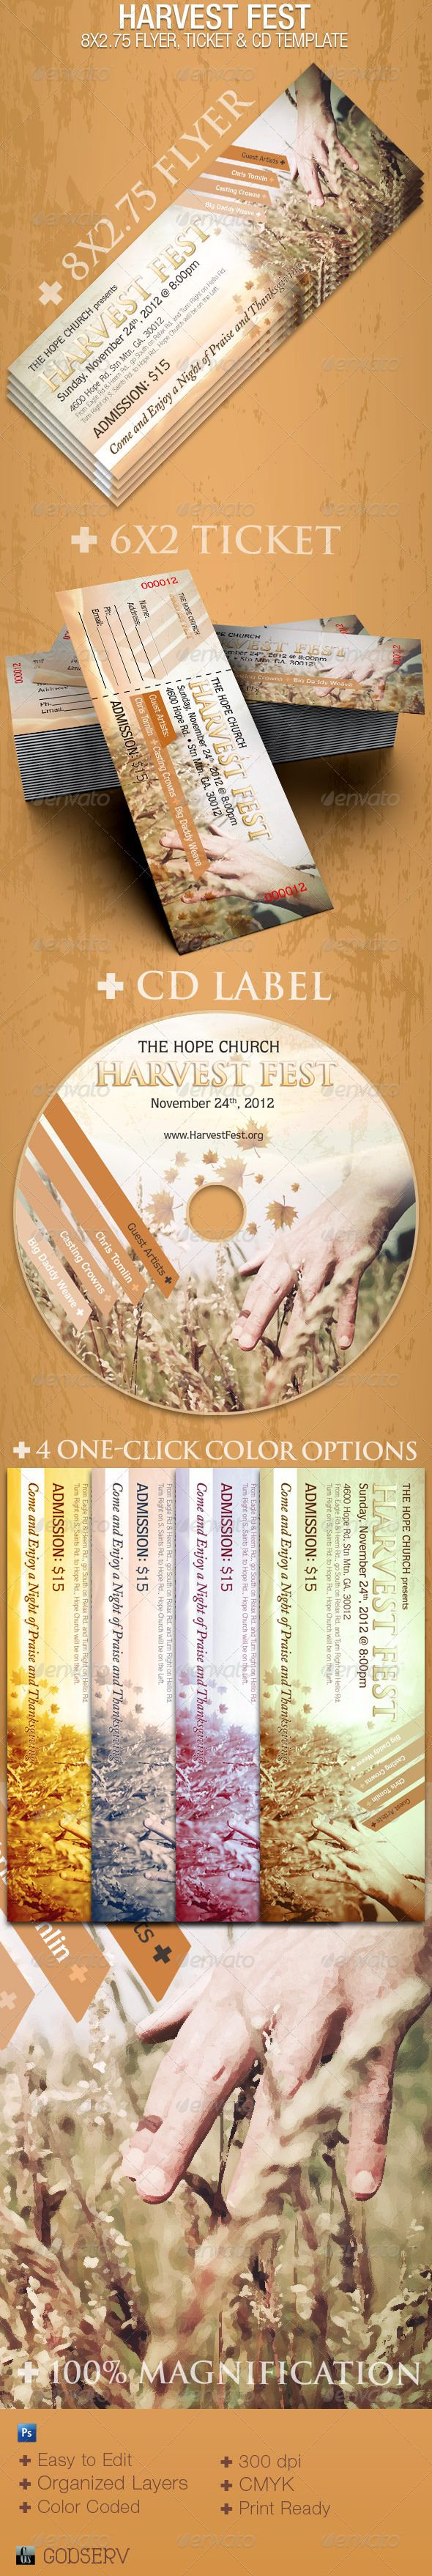 Harvest Fest Photoshop 8x2.75 Flyer Template #GraphicRiver The Harvest Fest Photoshop Flyer, CD and Ticket Template is great for any Church Fall or Harvest Festival, but can be used for Gospel Concerts or any other celebrate church event. The Layered Photoshop Templates are color coded and organized in folders for easy editing. 4 One-Click Color Options are Included. In this package you'll get at a great value which includes 3 Photoshop Templates. What's Included: 1 8×2.75 Flyer Template (8.25×3